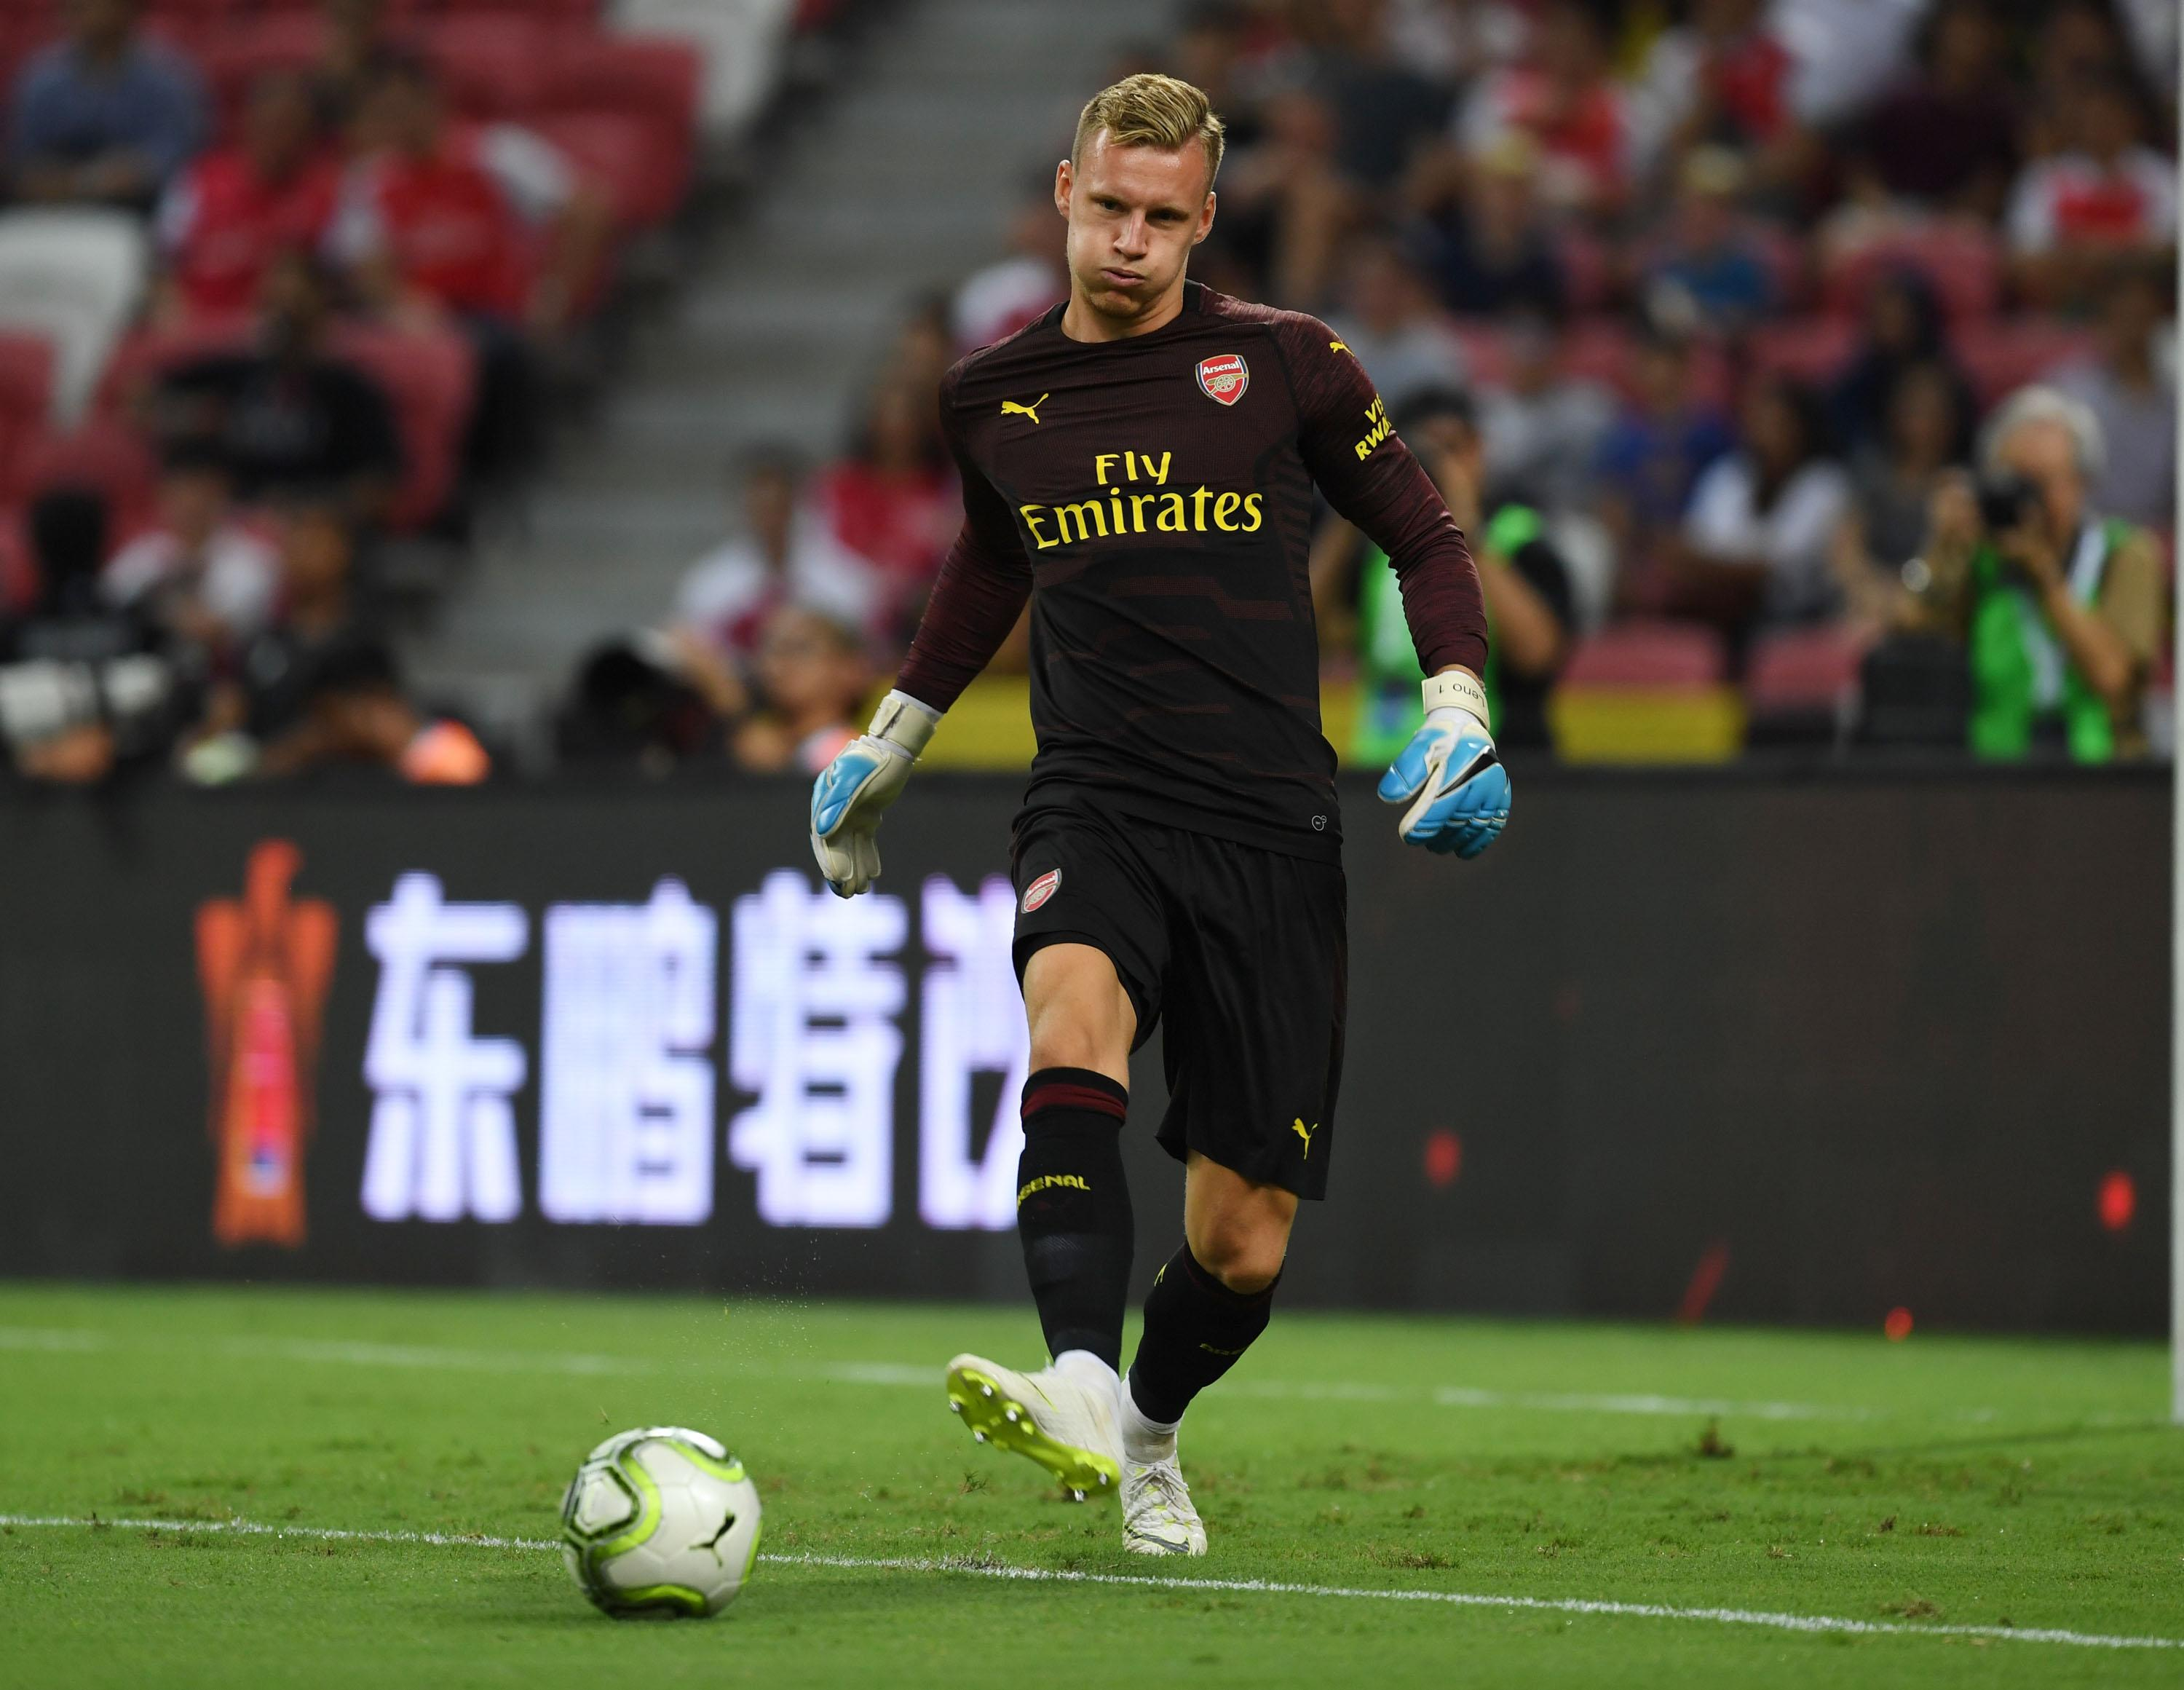 Leno is comfortable with the ball at his feet